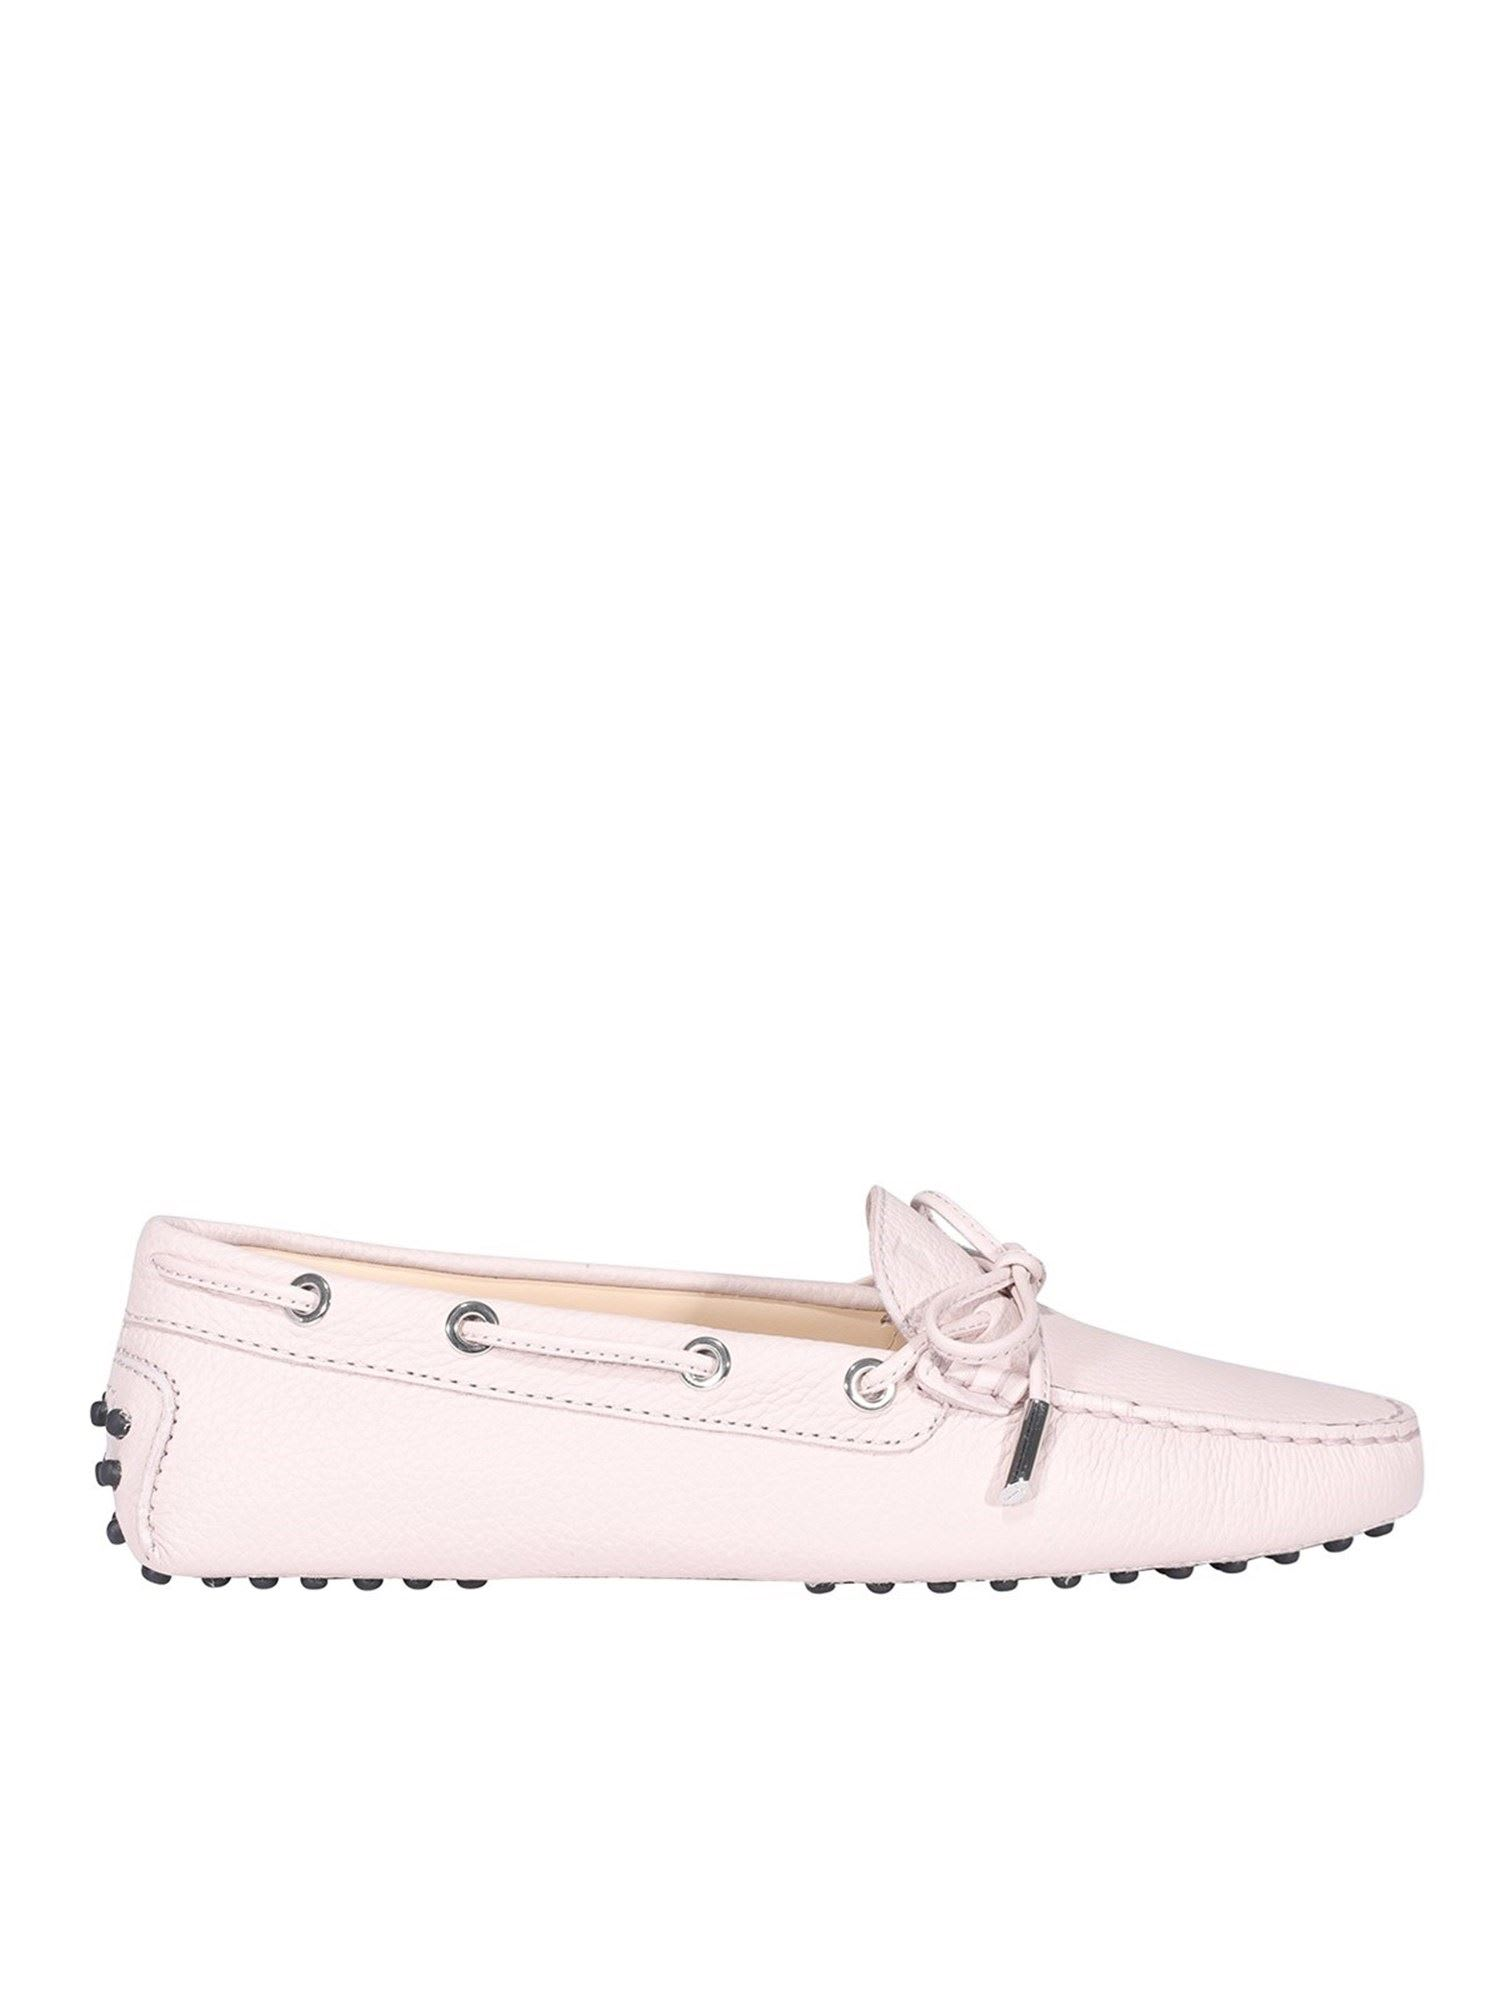 Buy Tods Driving Loafers online, shop Tods shoes with free shipping